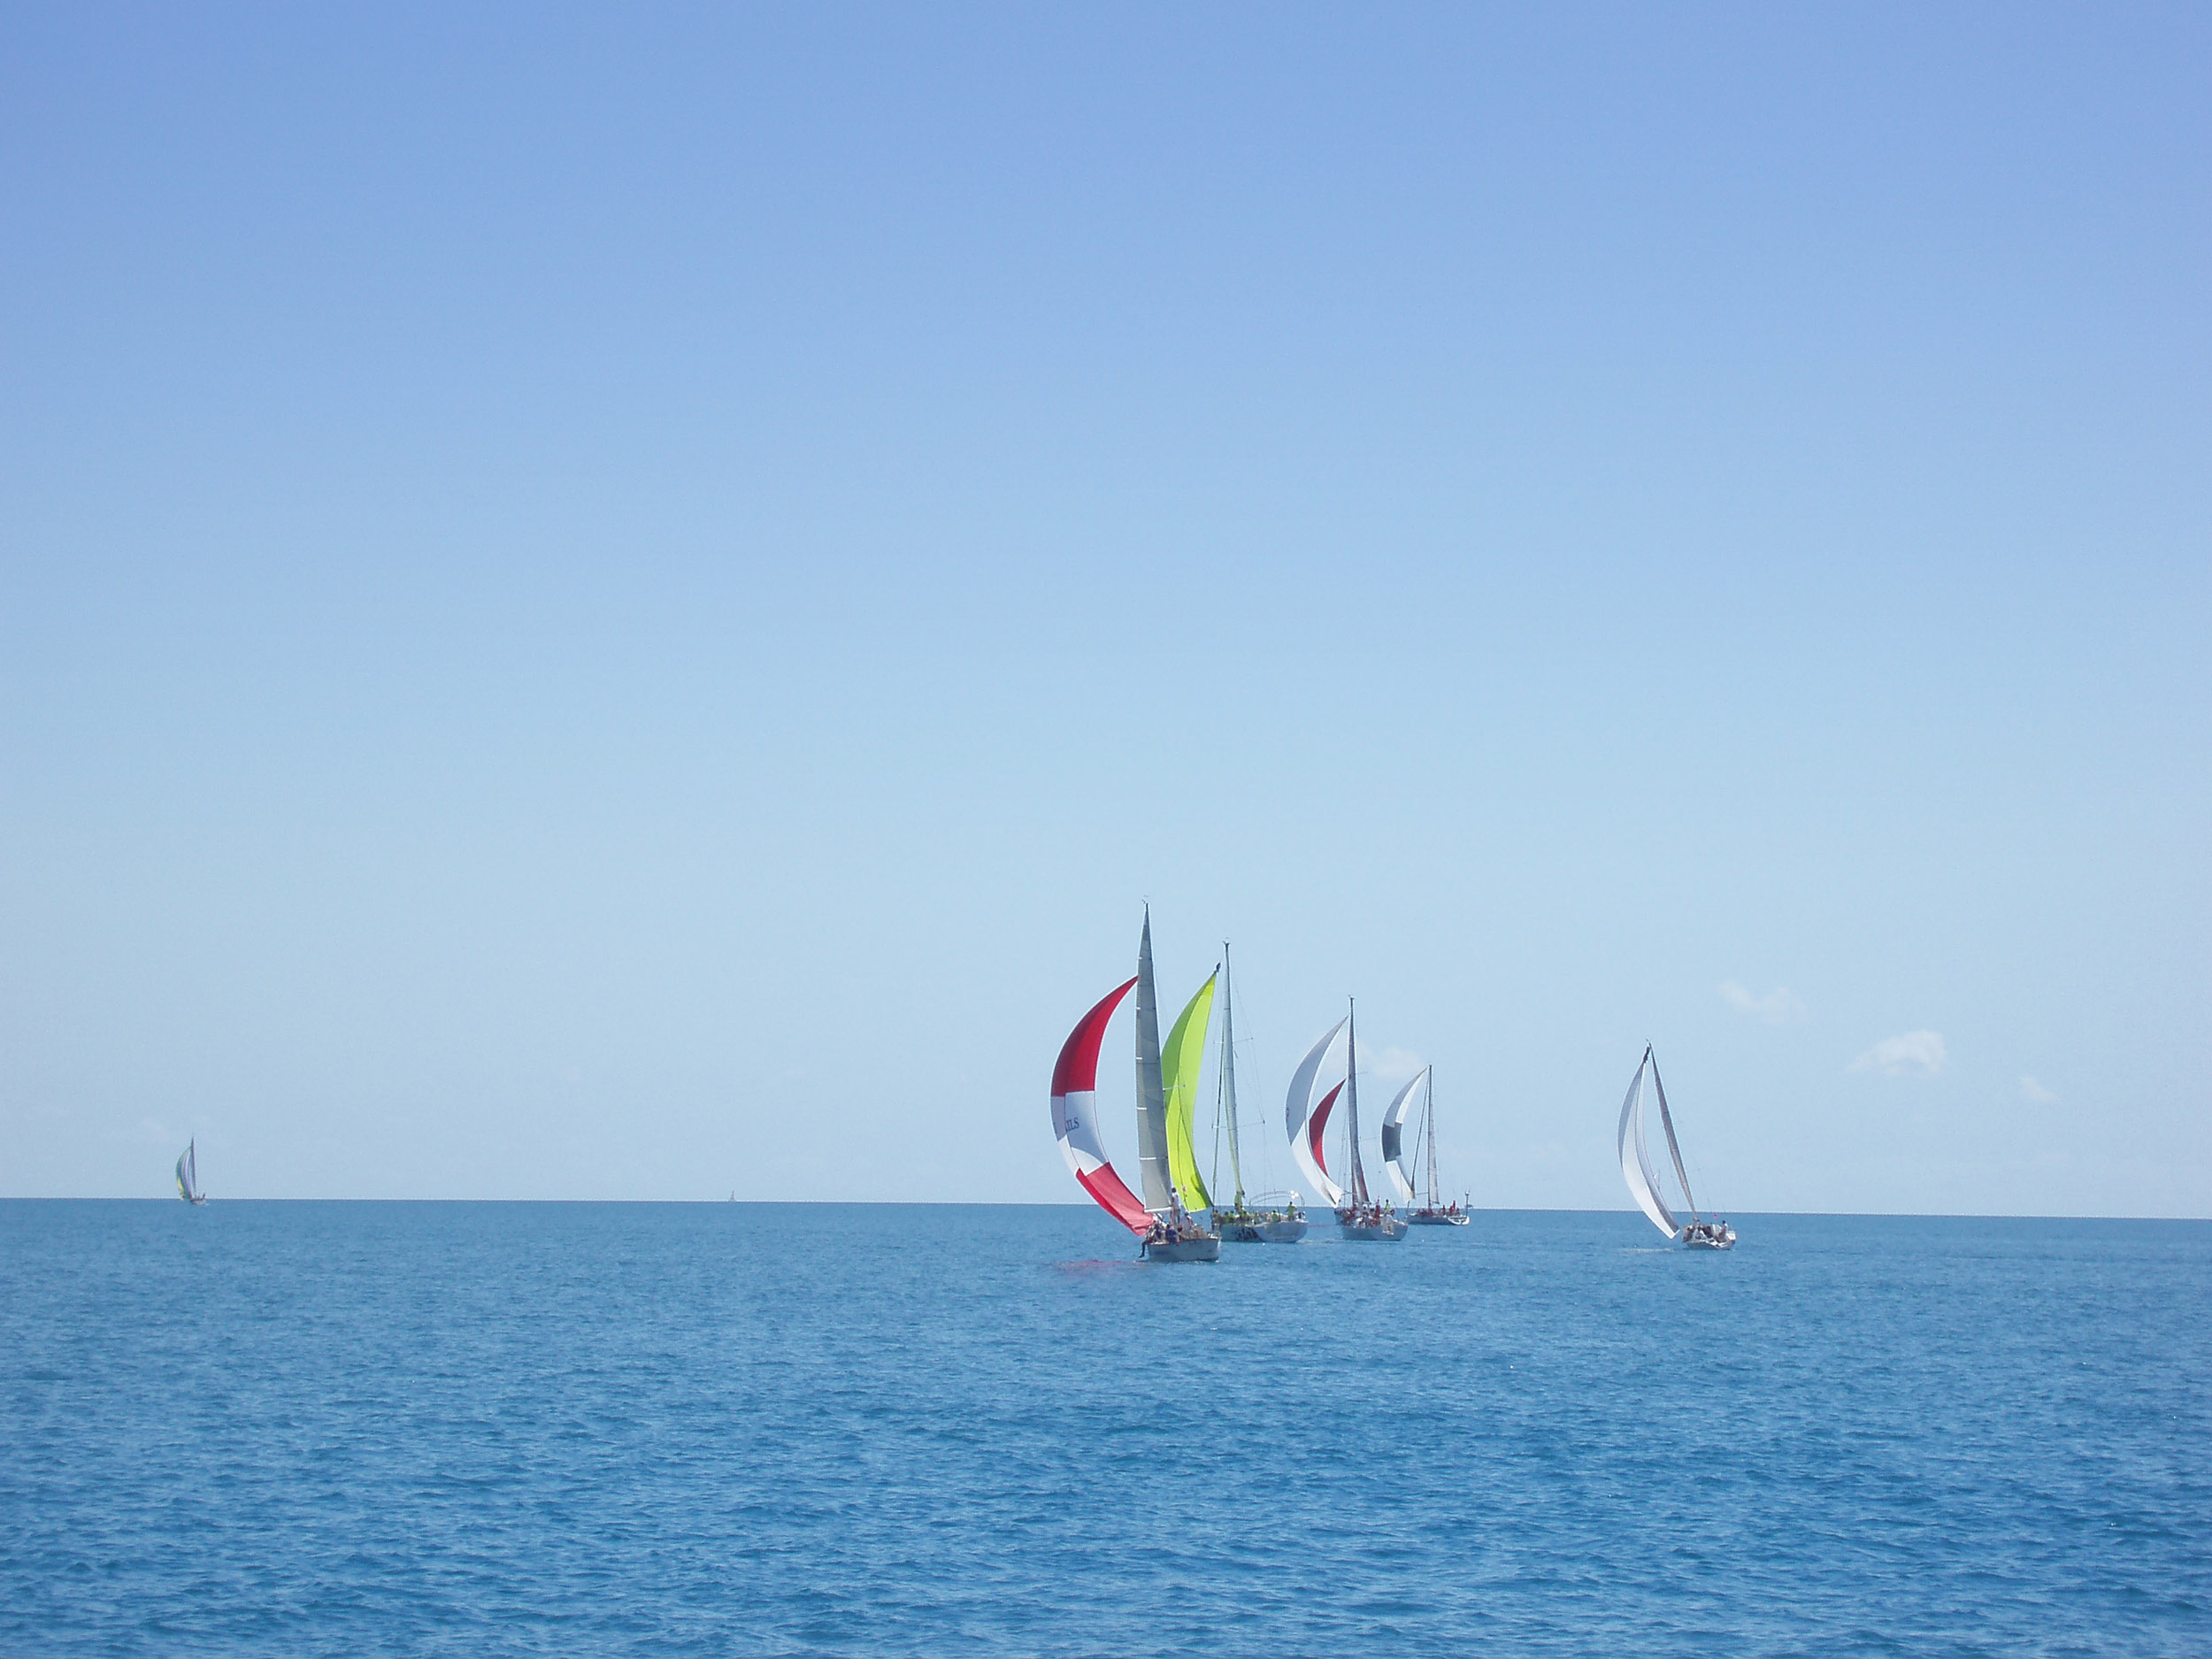 a yacht race in light air, several boats on a calm ocean flying spinnaker sails